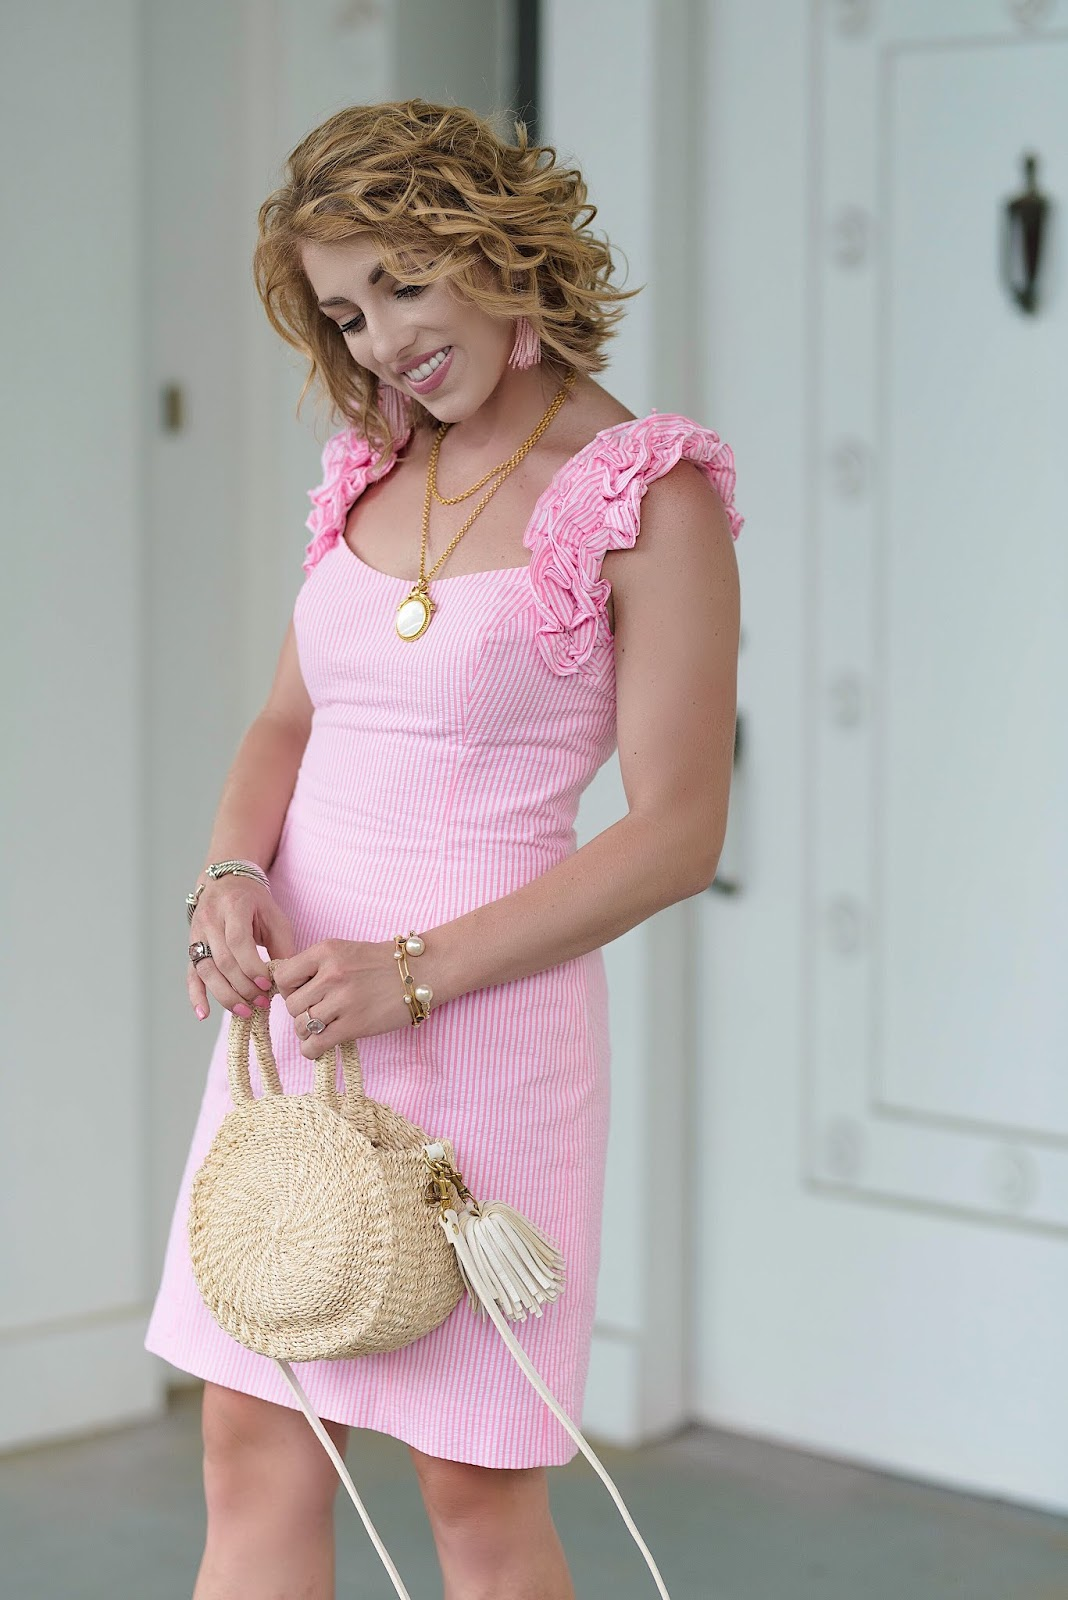 Lilly Pulitzer Devina Dress in Pink Cosmo Seersucker - Something Delightful Blog